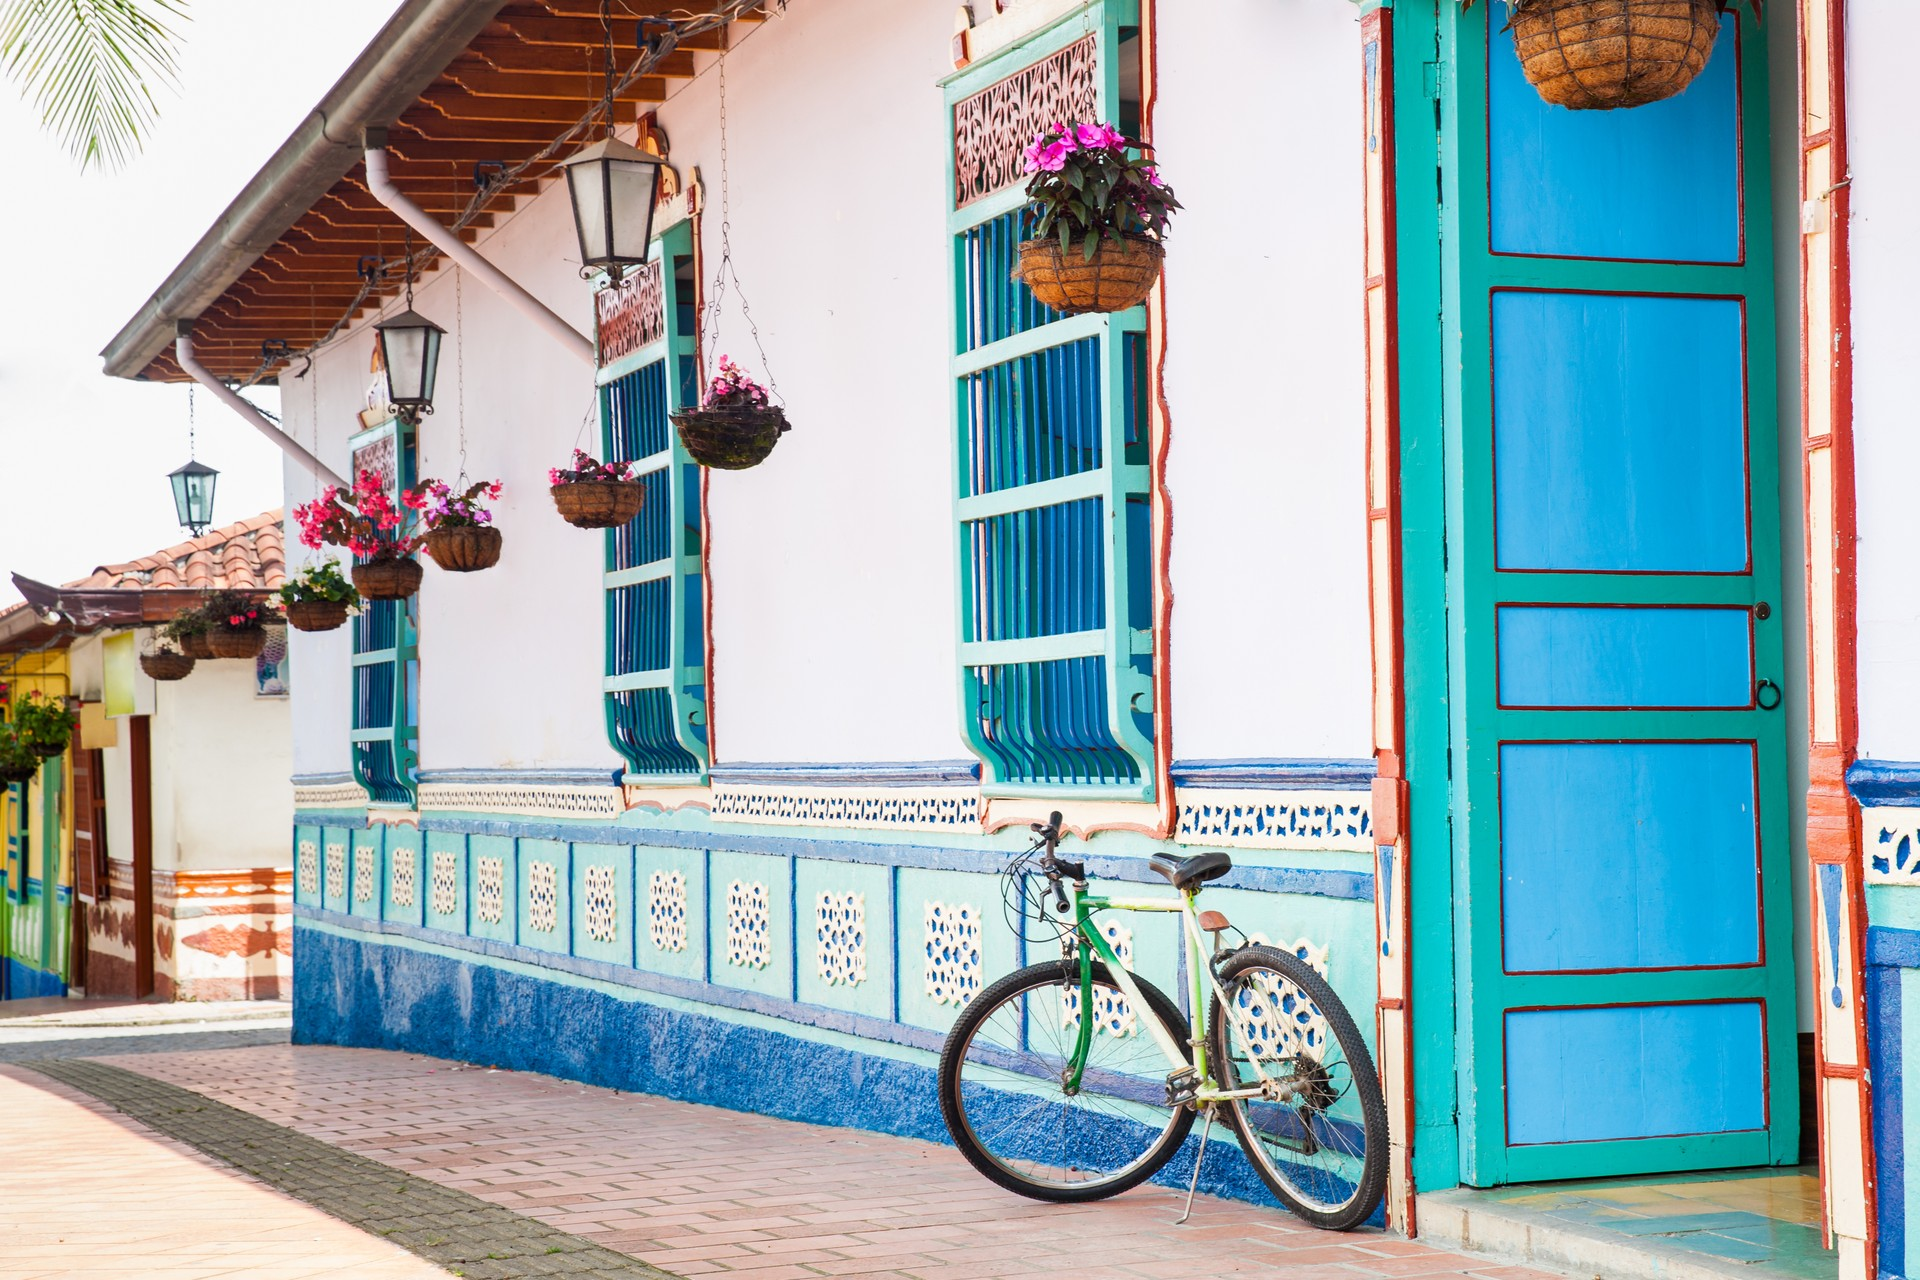 A bike leans against a colourful house in Guatapé, Colombia